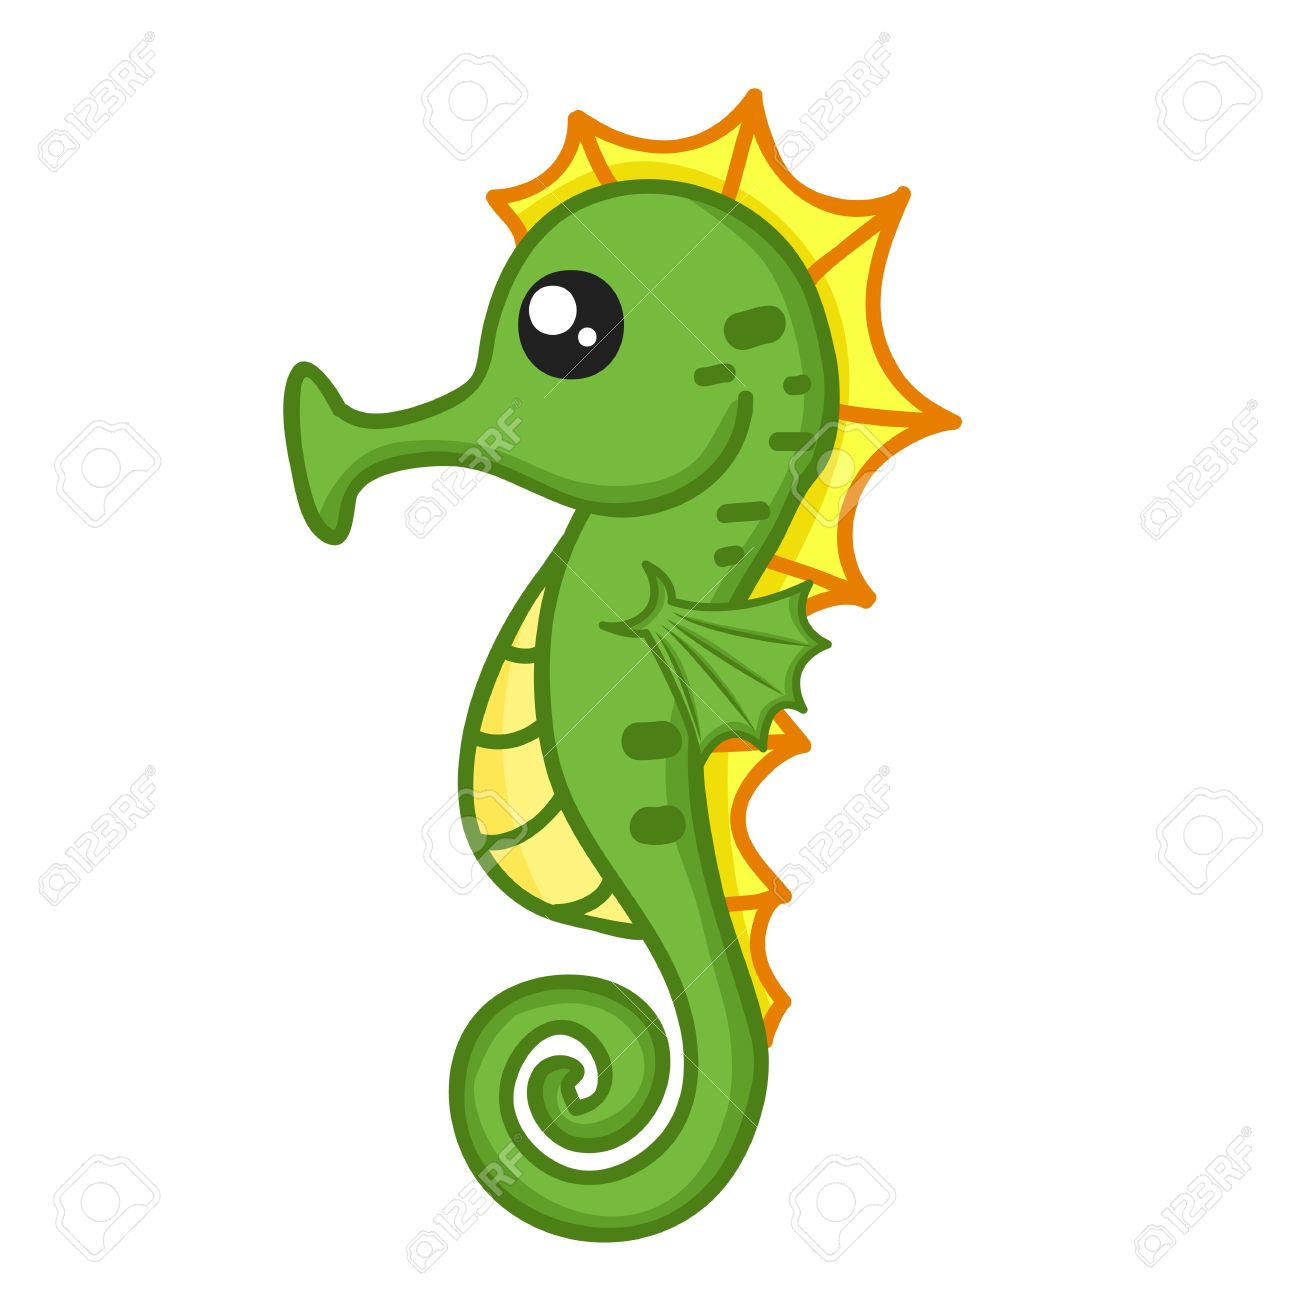 cute seahorse isolated illustration on white background royalty